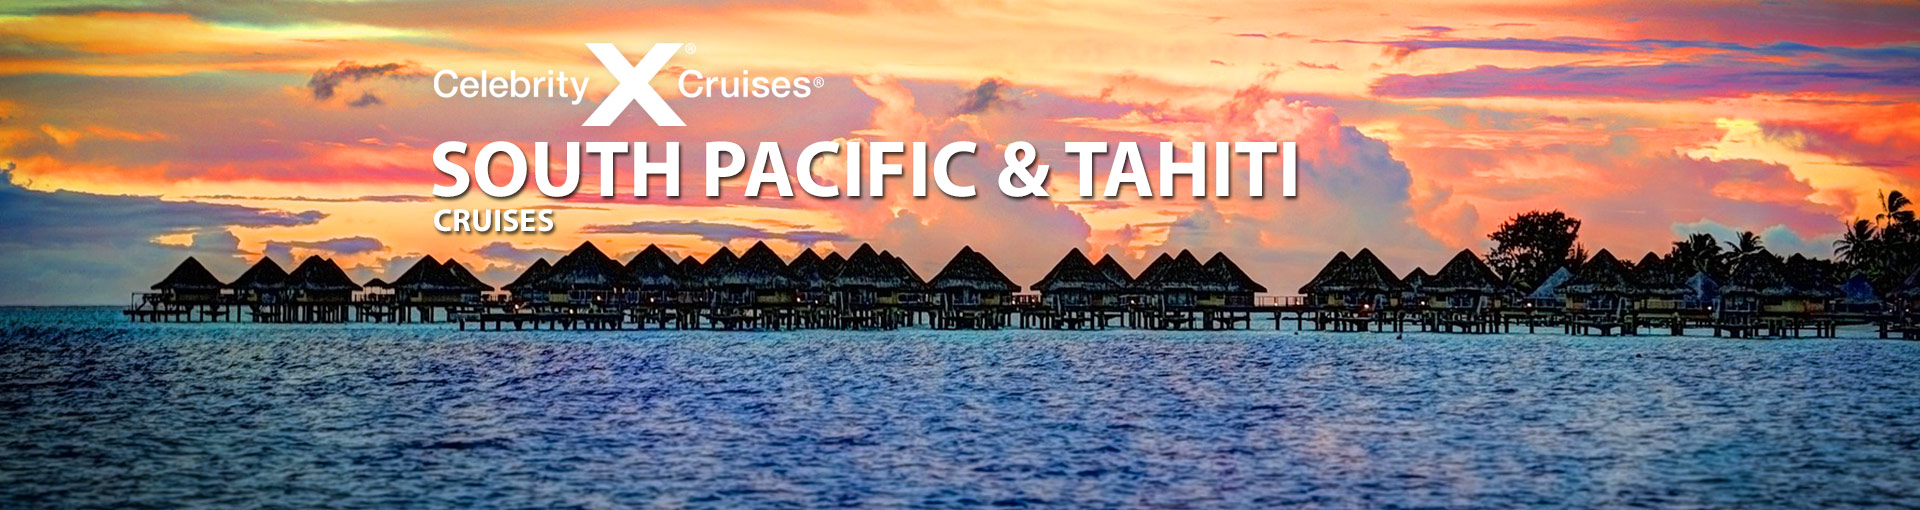 Celebrity Cruises to the South Pacific and Tahiti